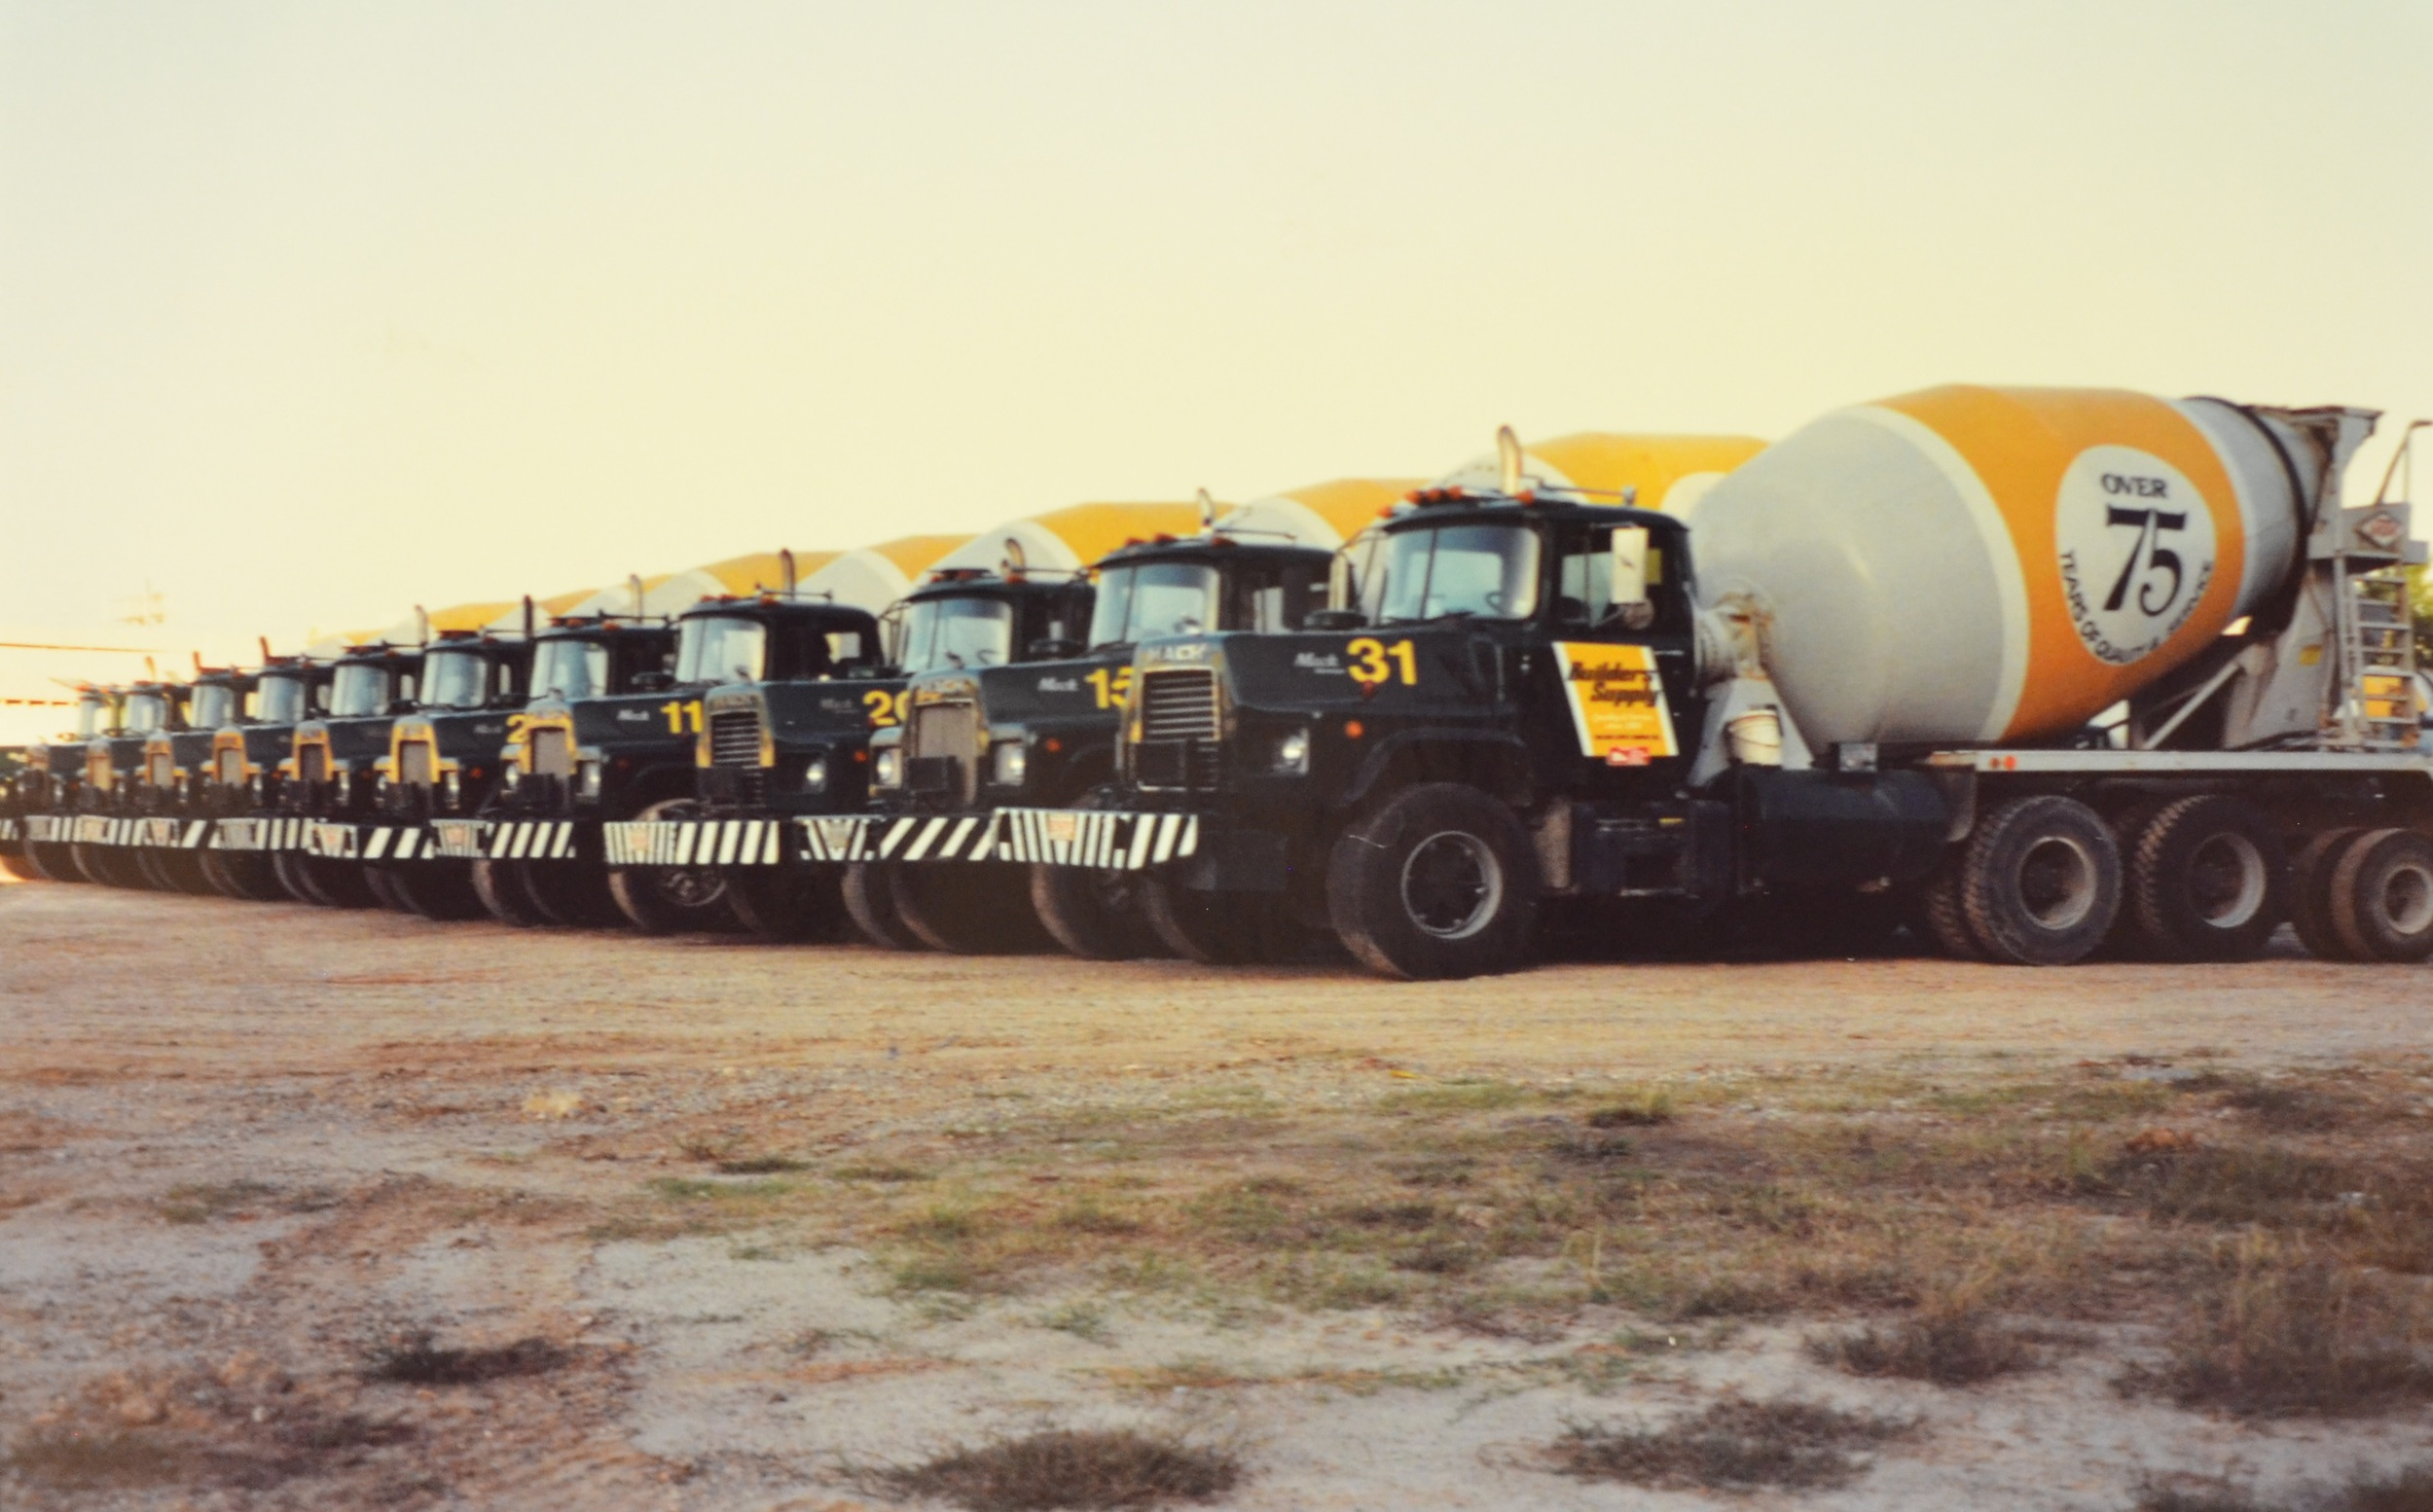 In 1978, Builders Supply started purchasing Mack trucks like these shown here.